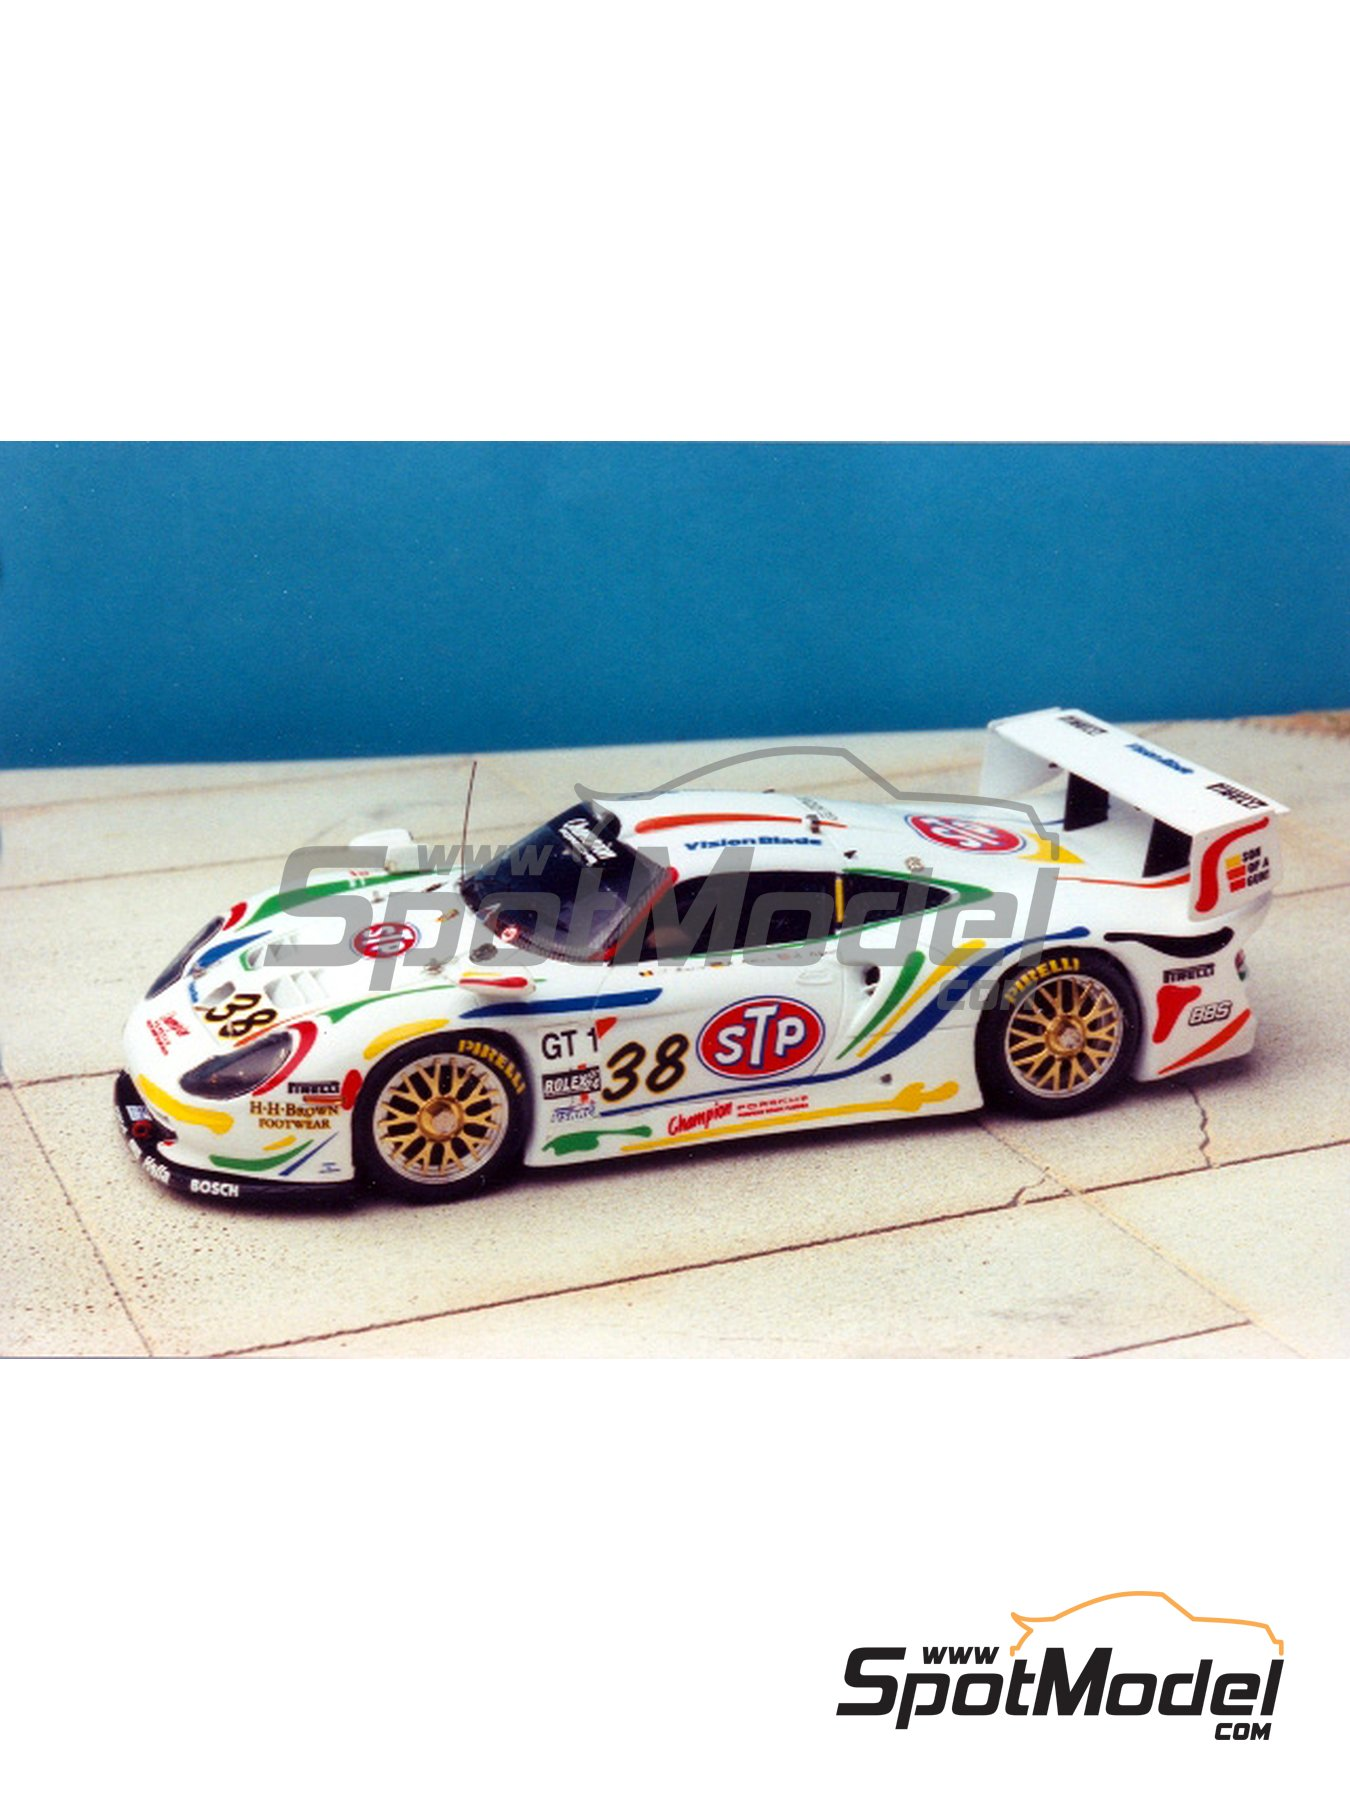 renaissance models model car kit 1 43 scale porsche 911 gt1 stp champion. Black Bedroom Furniture Sets. Home Design Ideas